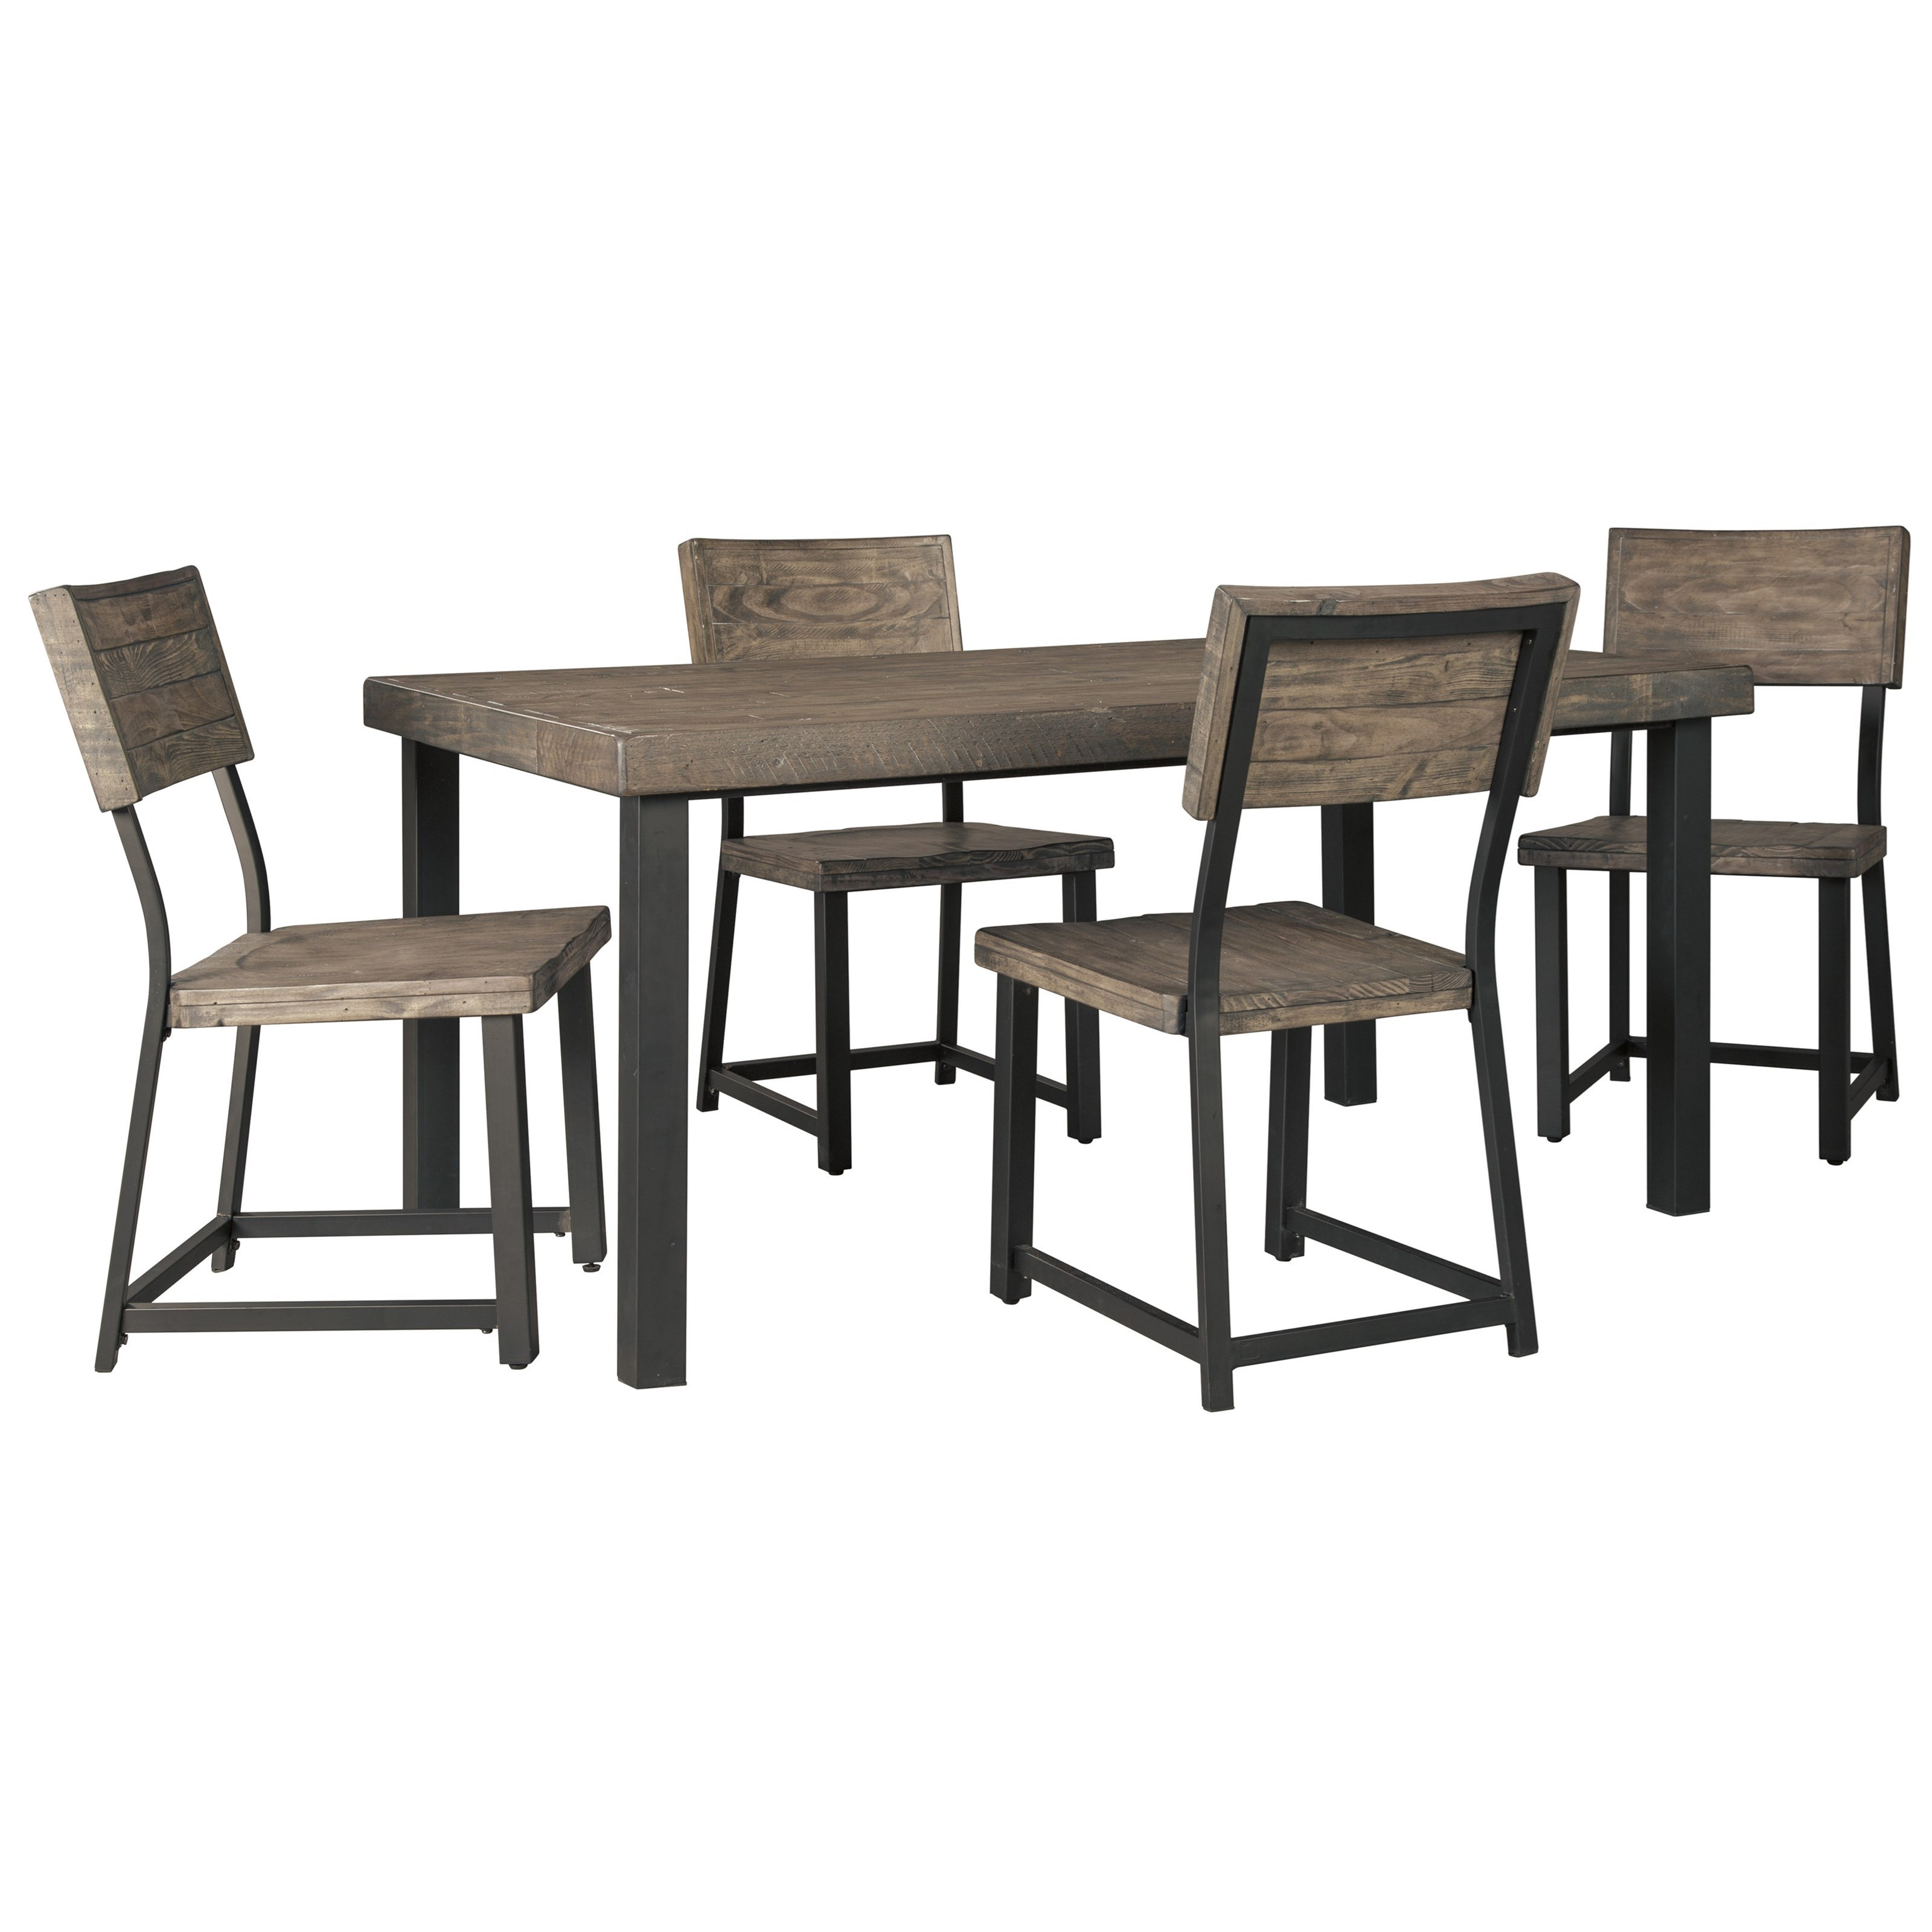 Cazentine 5-Piece Rectangular Dining Table Set by Signature Design by Ashley at Lapeer Furniture & Mattress Center